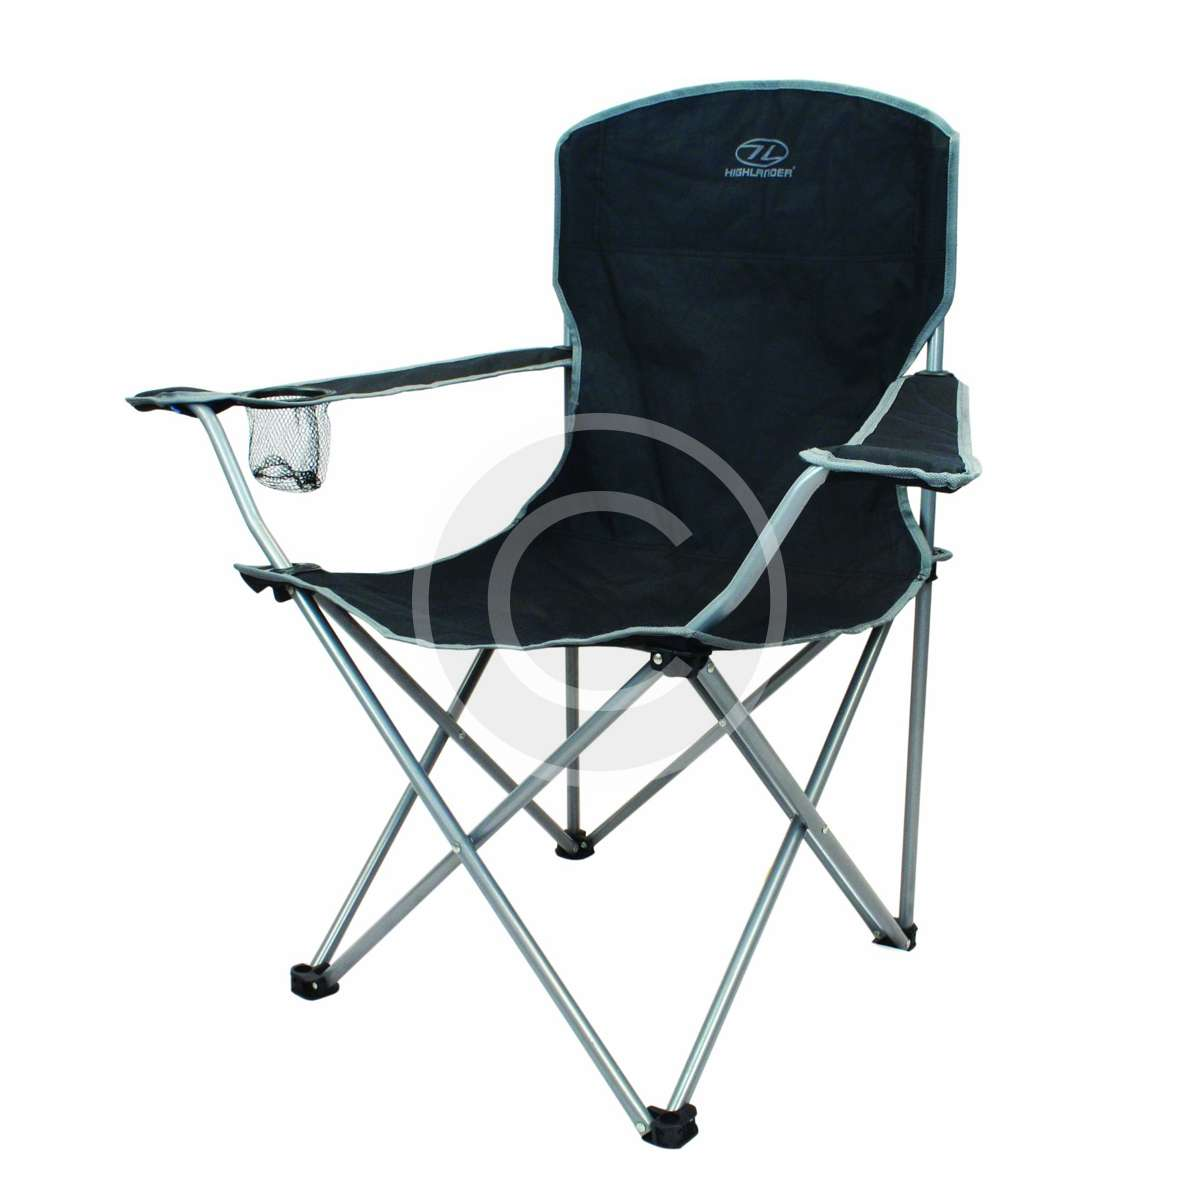 Small Camping Chair Foldable Small Camping Chair